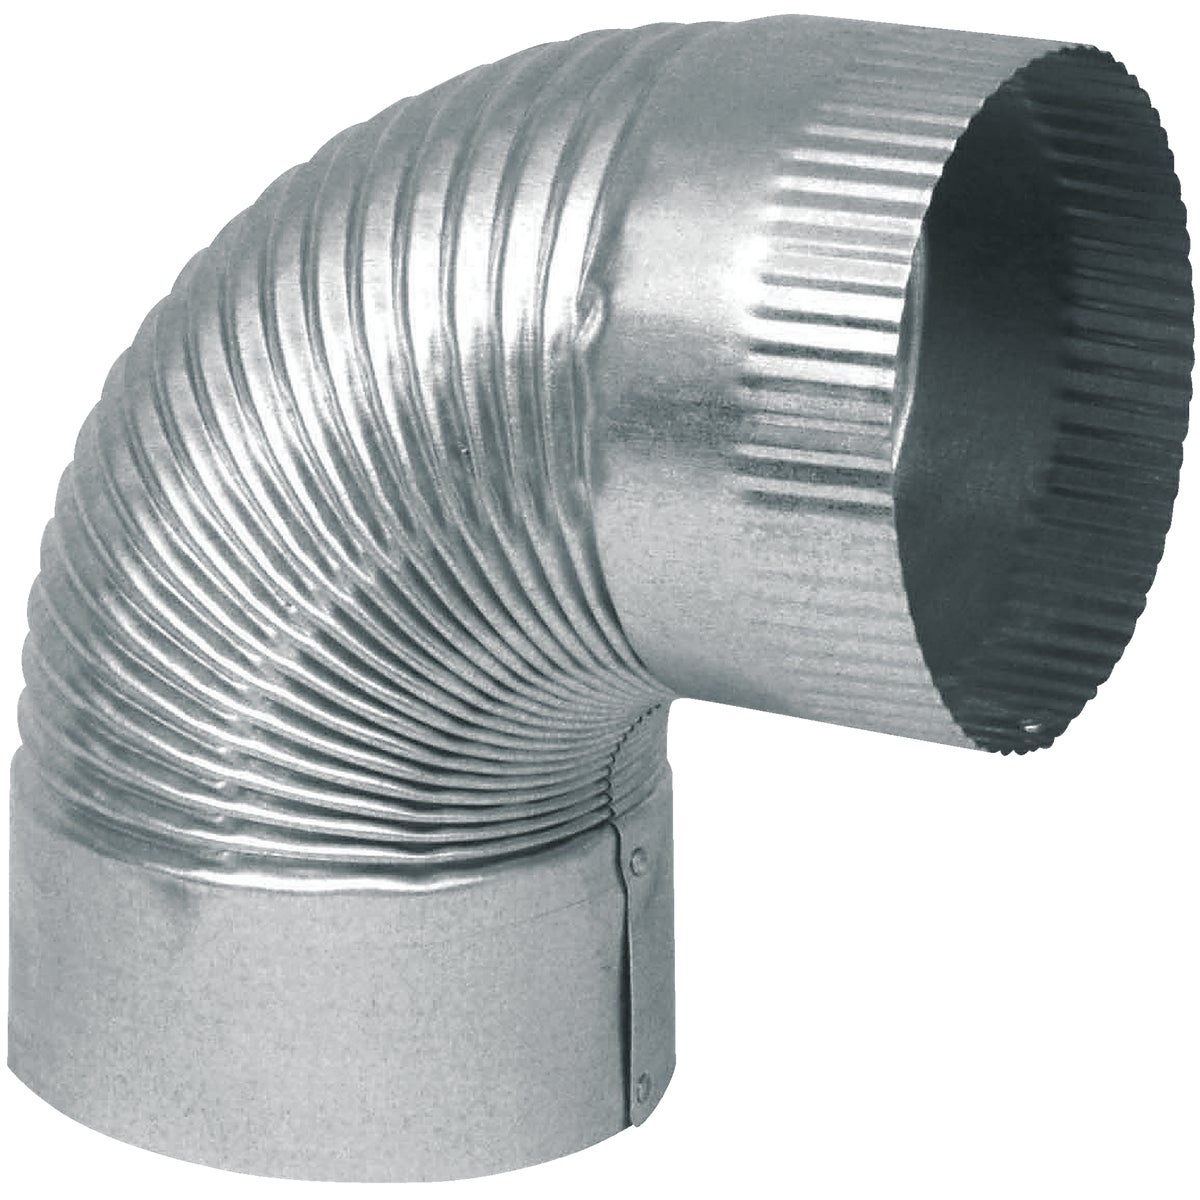 "6"" 30GA GALV CORR ELBOW - GV0327-C by Imperial Mfg Group"